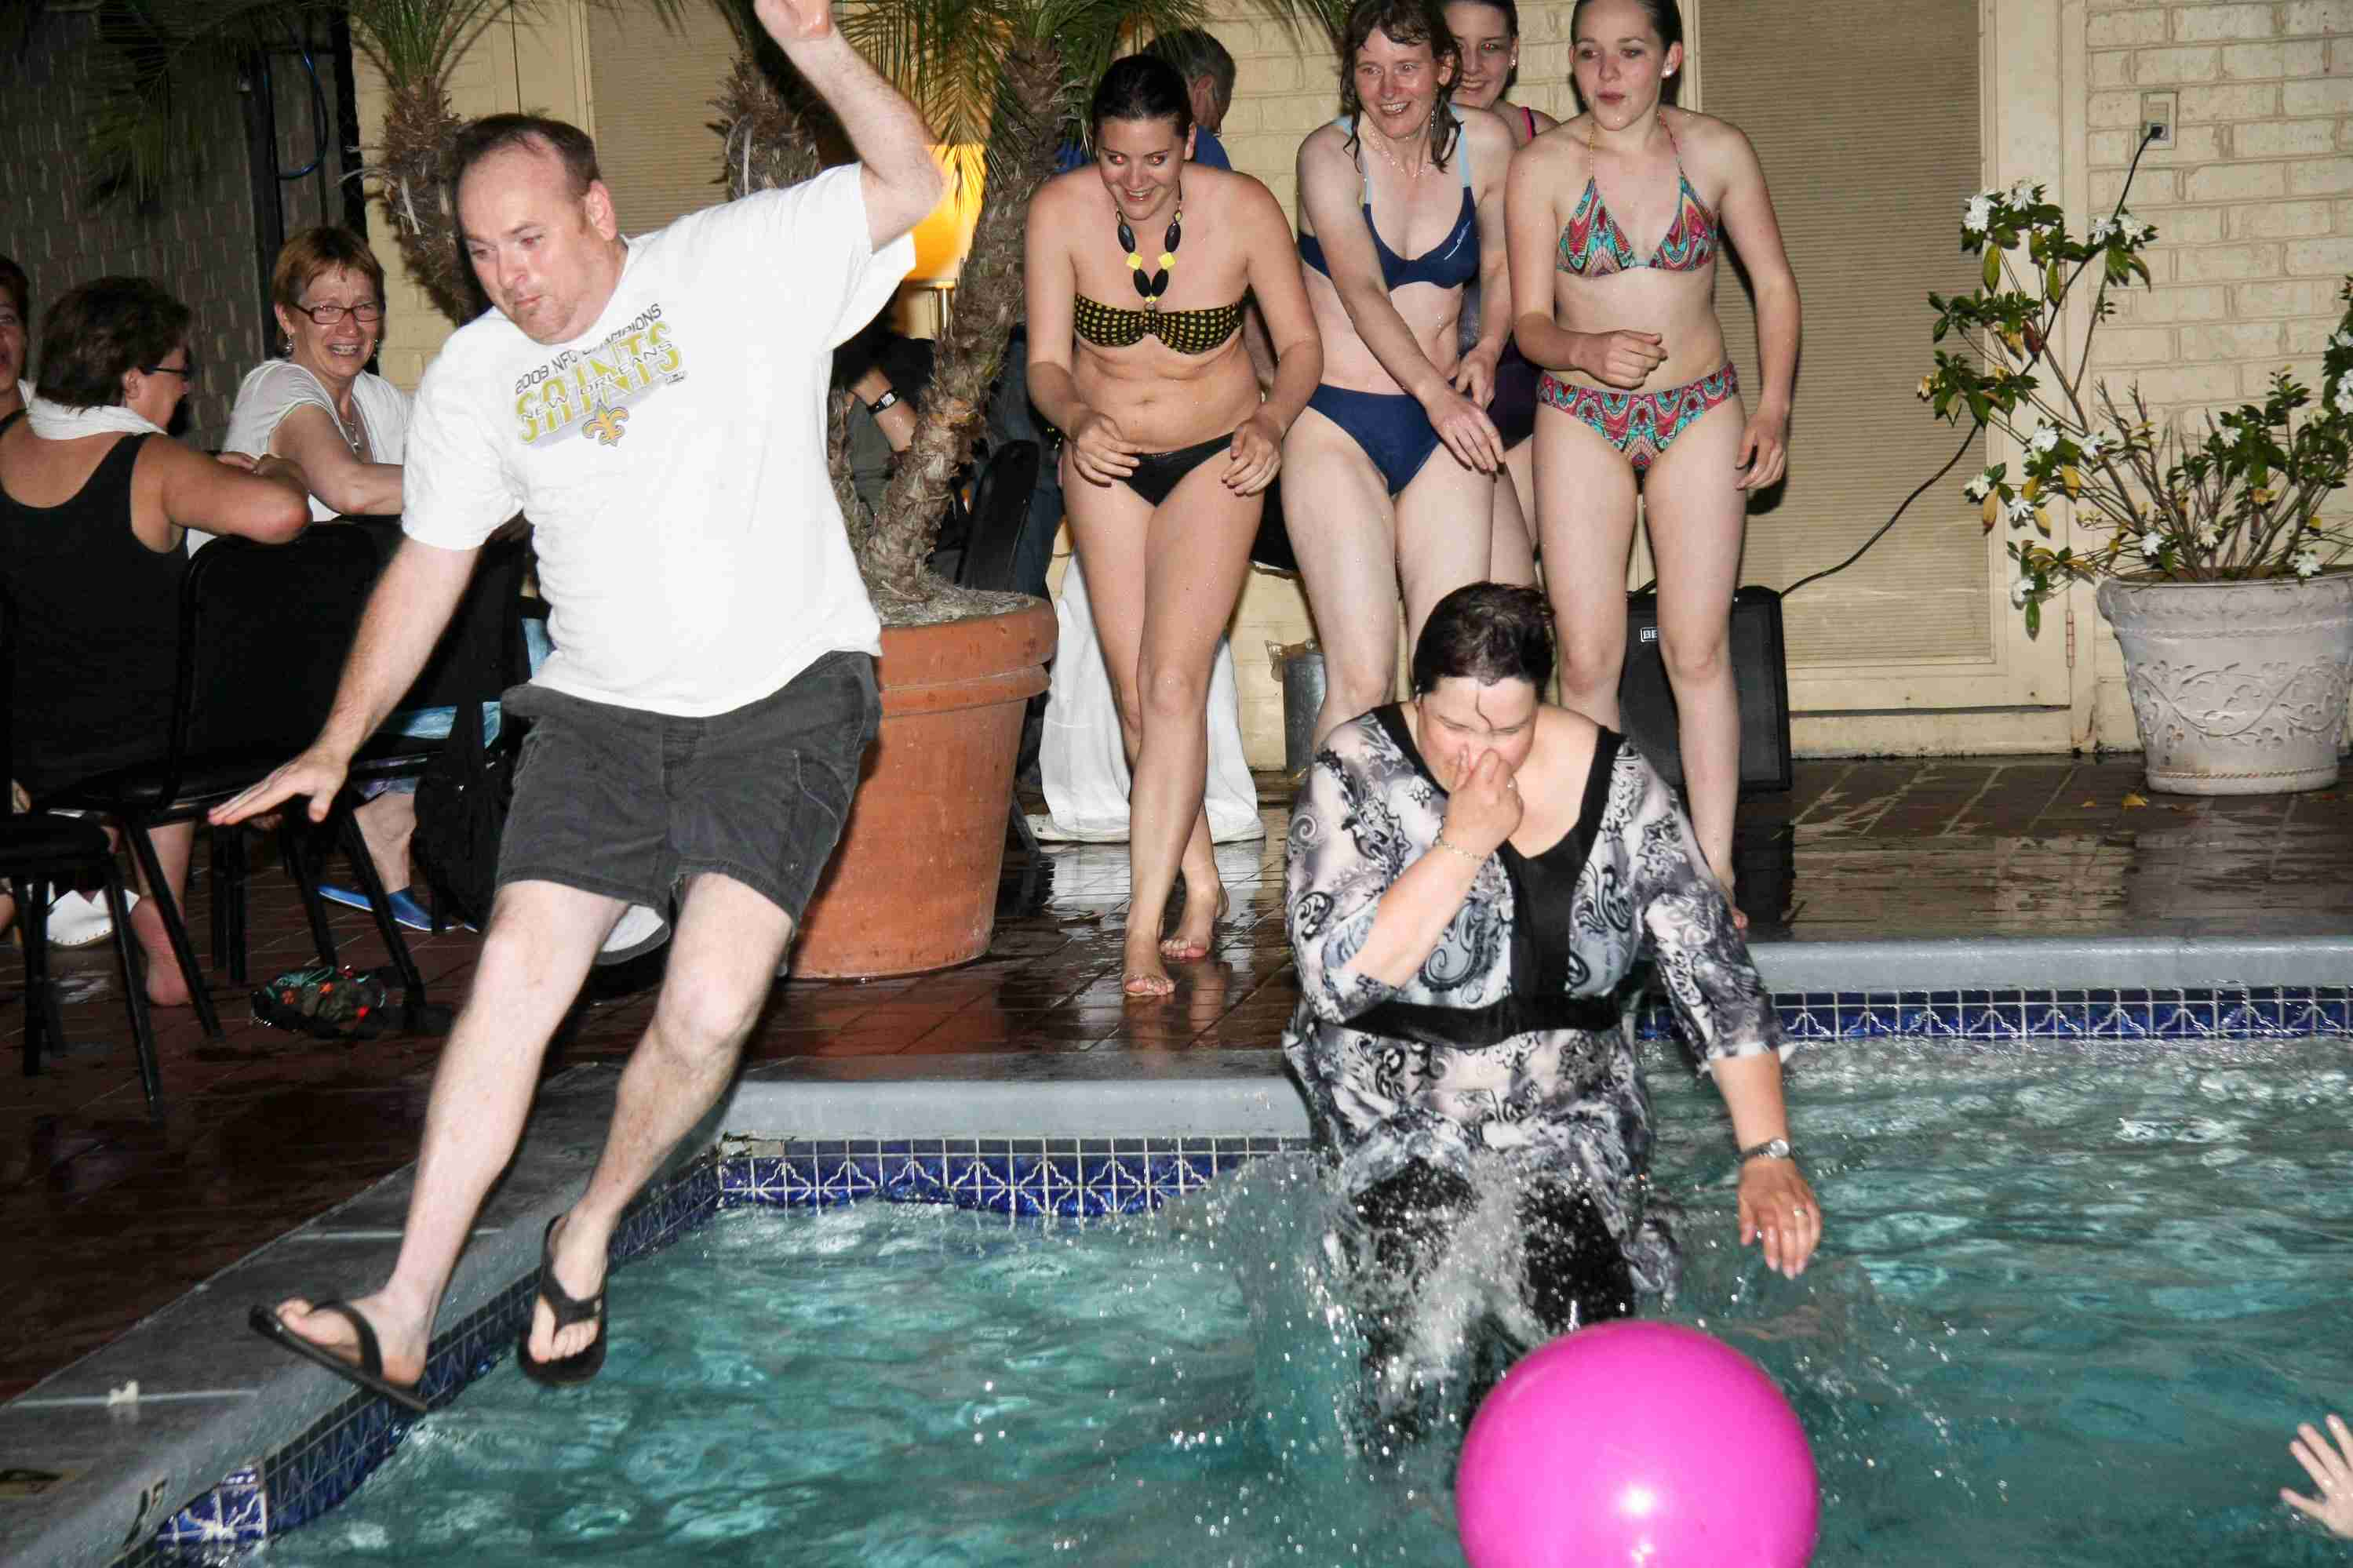 hotelmanager in den pool